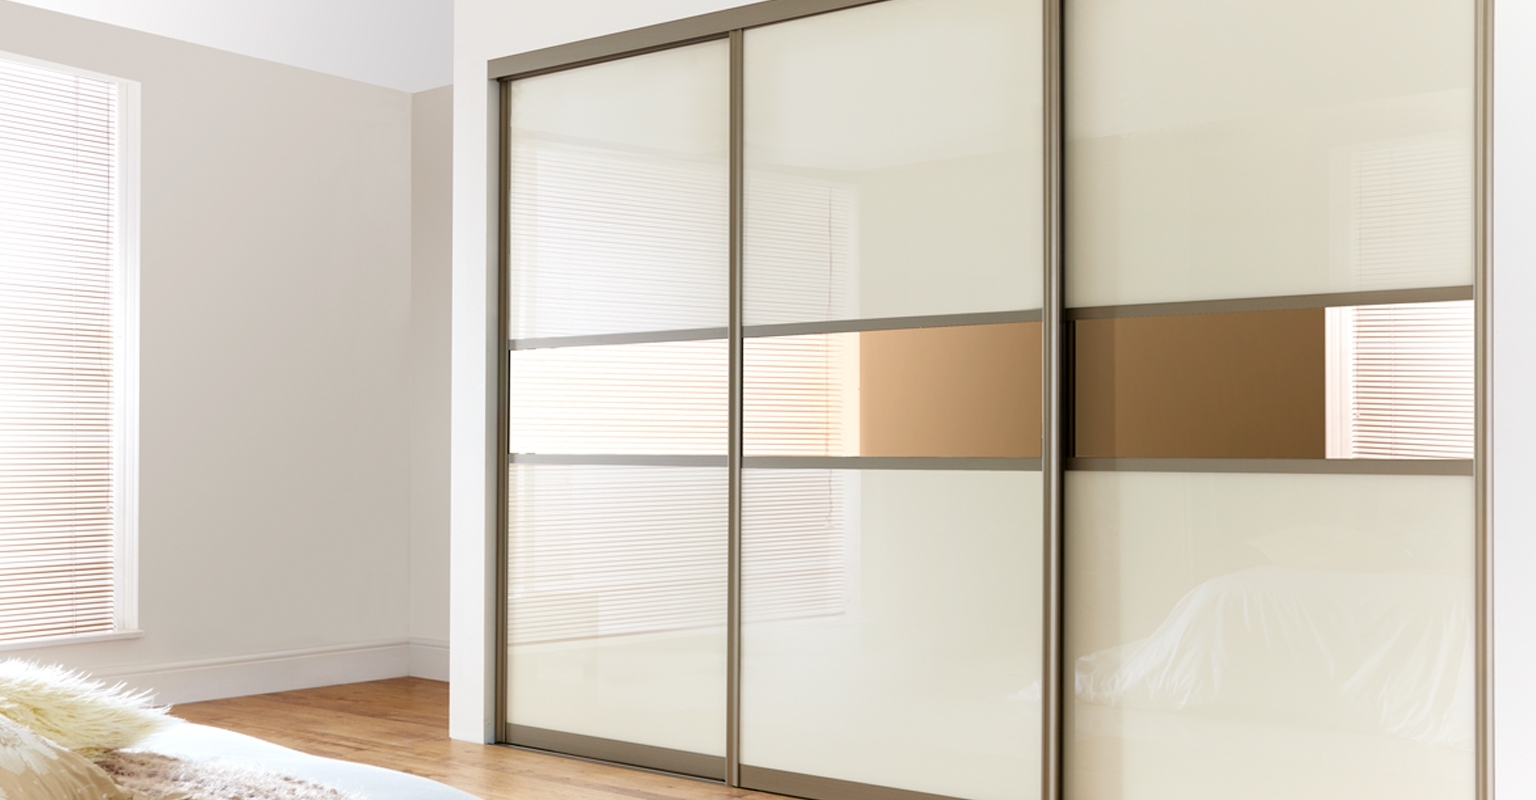 2018 Imperial Wardrobes Intended For Fitted Wardrobes Brochure, Different Types Of Wardrobes & Fittings (View 13 of 15)